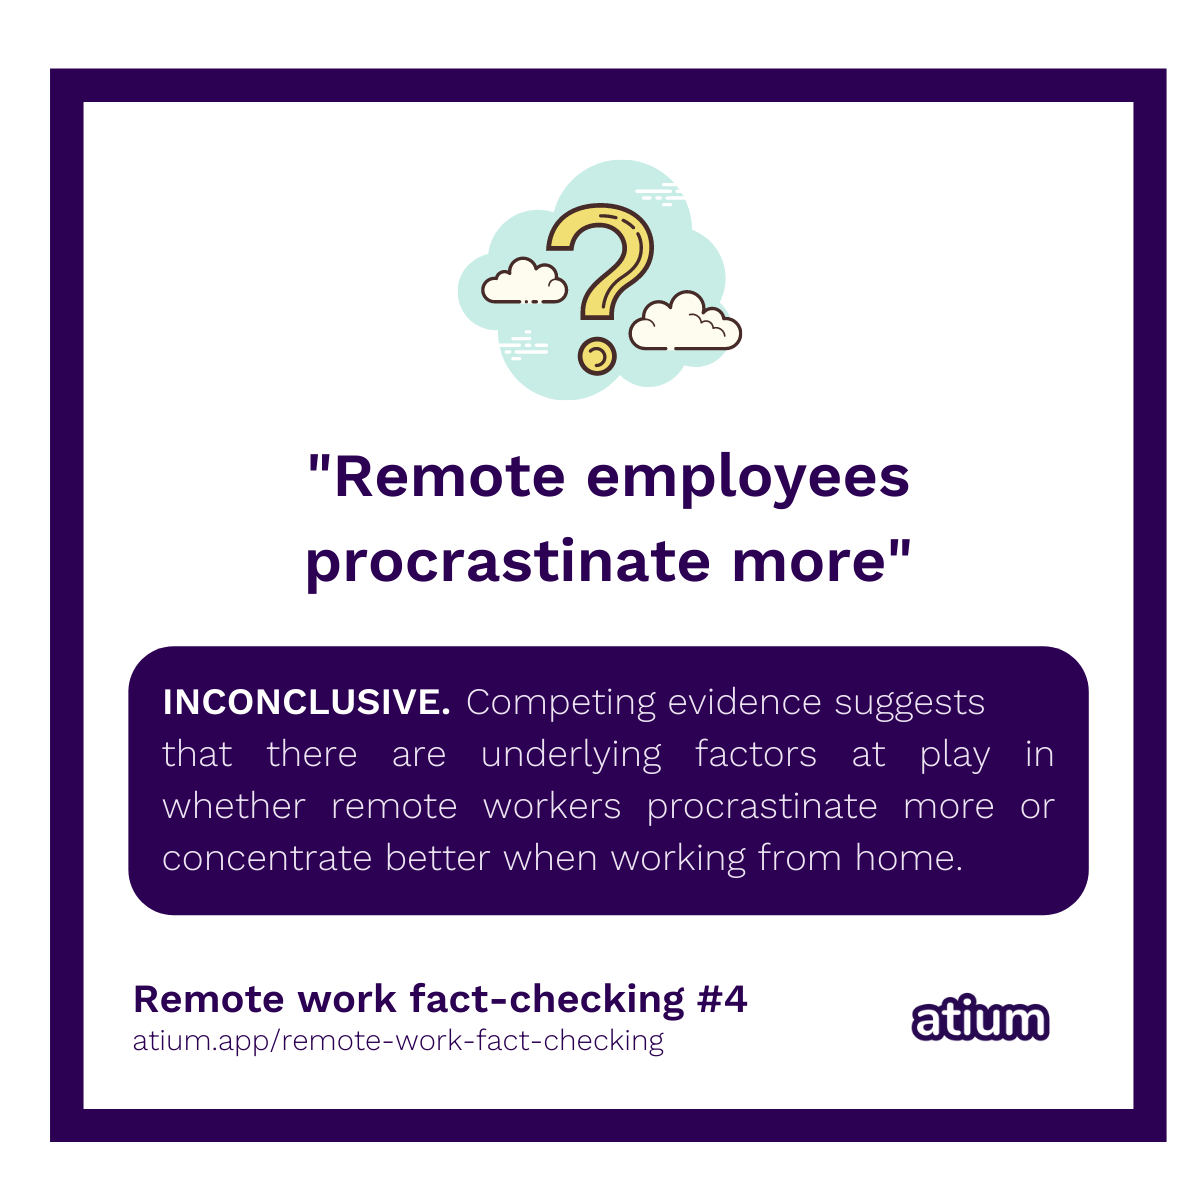 Remote employees procrastinate more